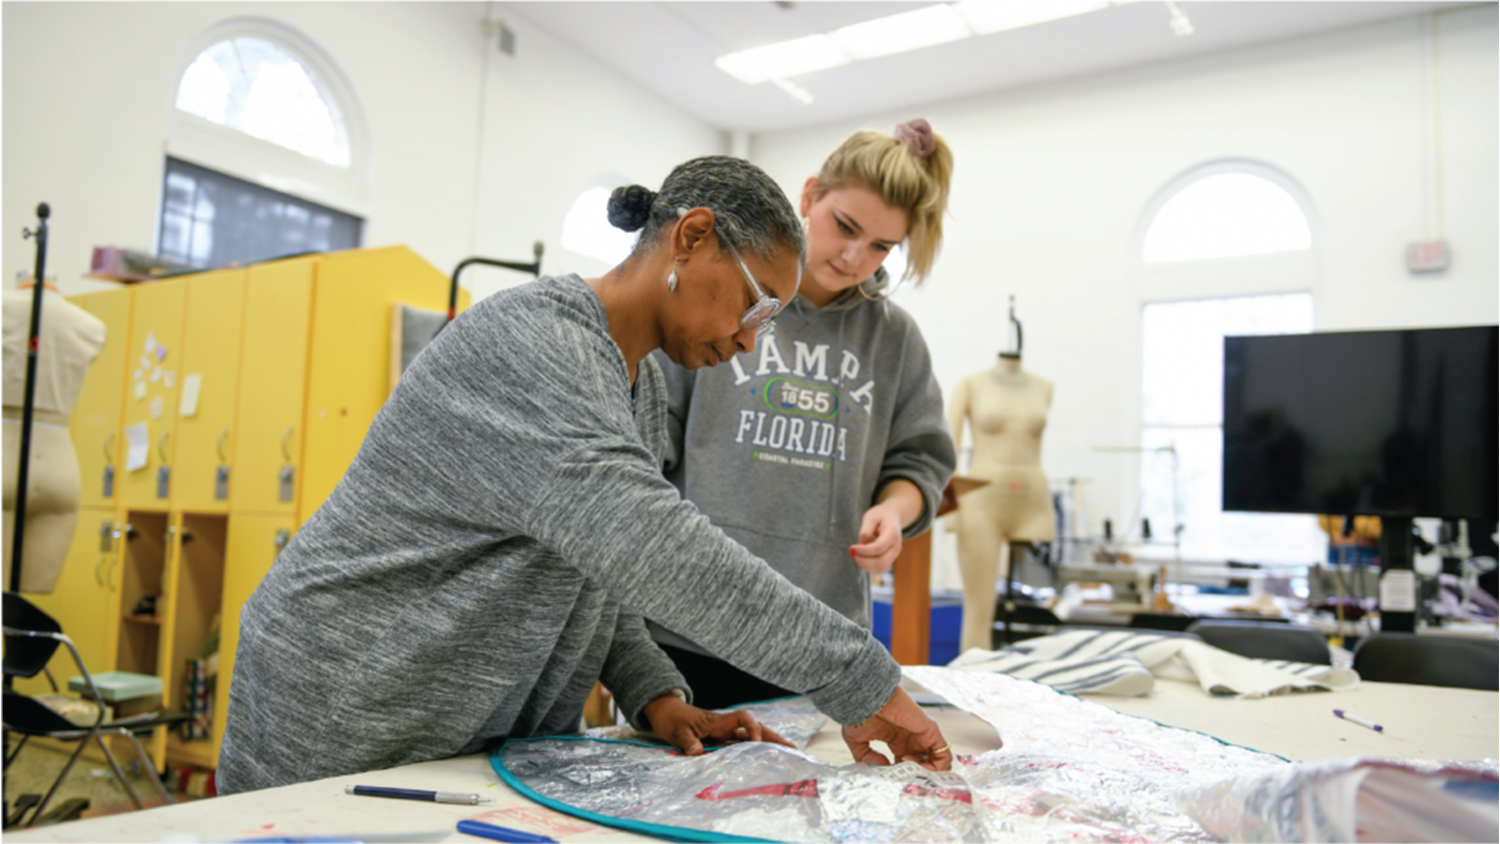 A faculty member and student work in a research lab together